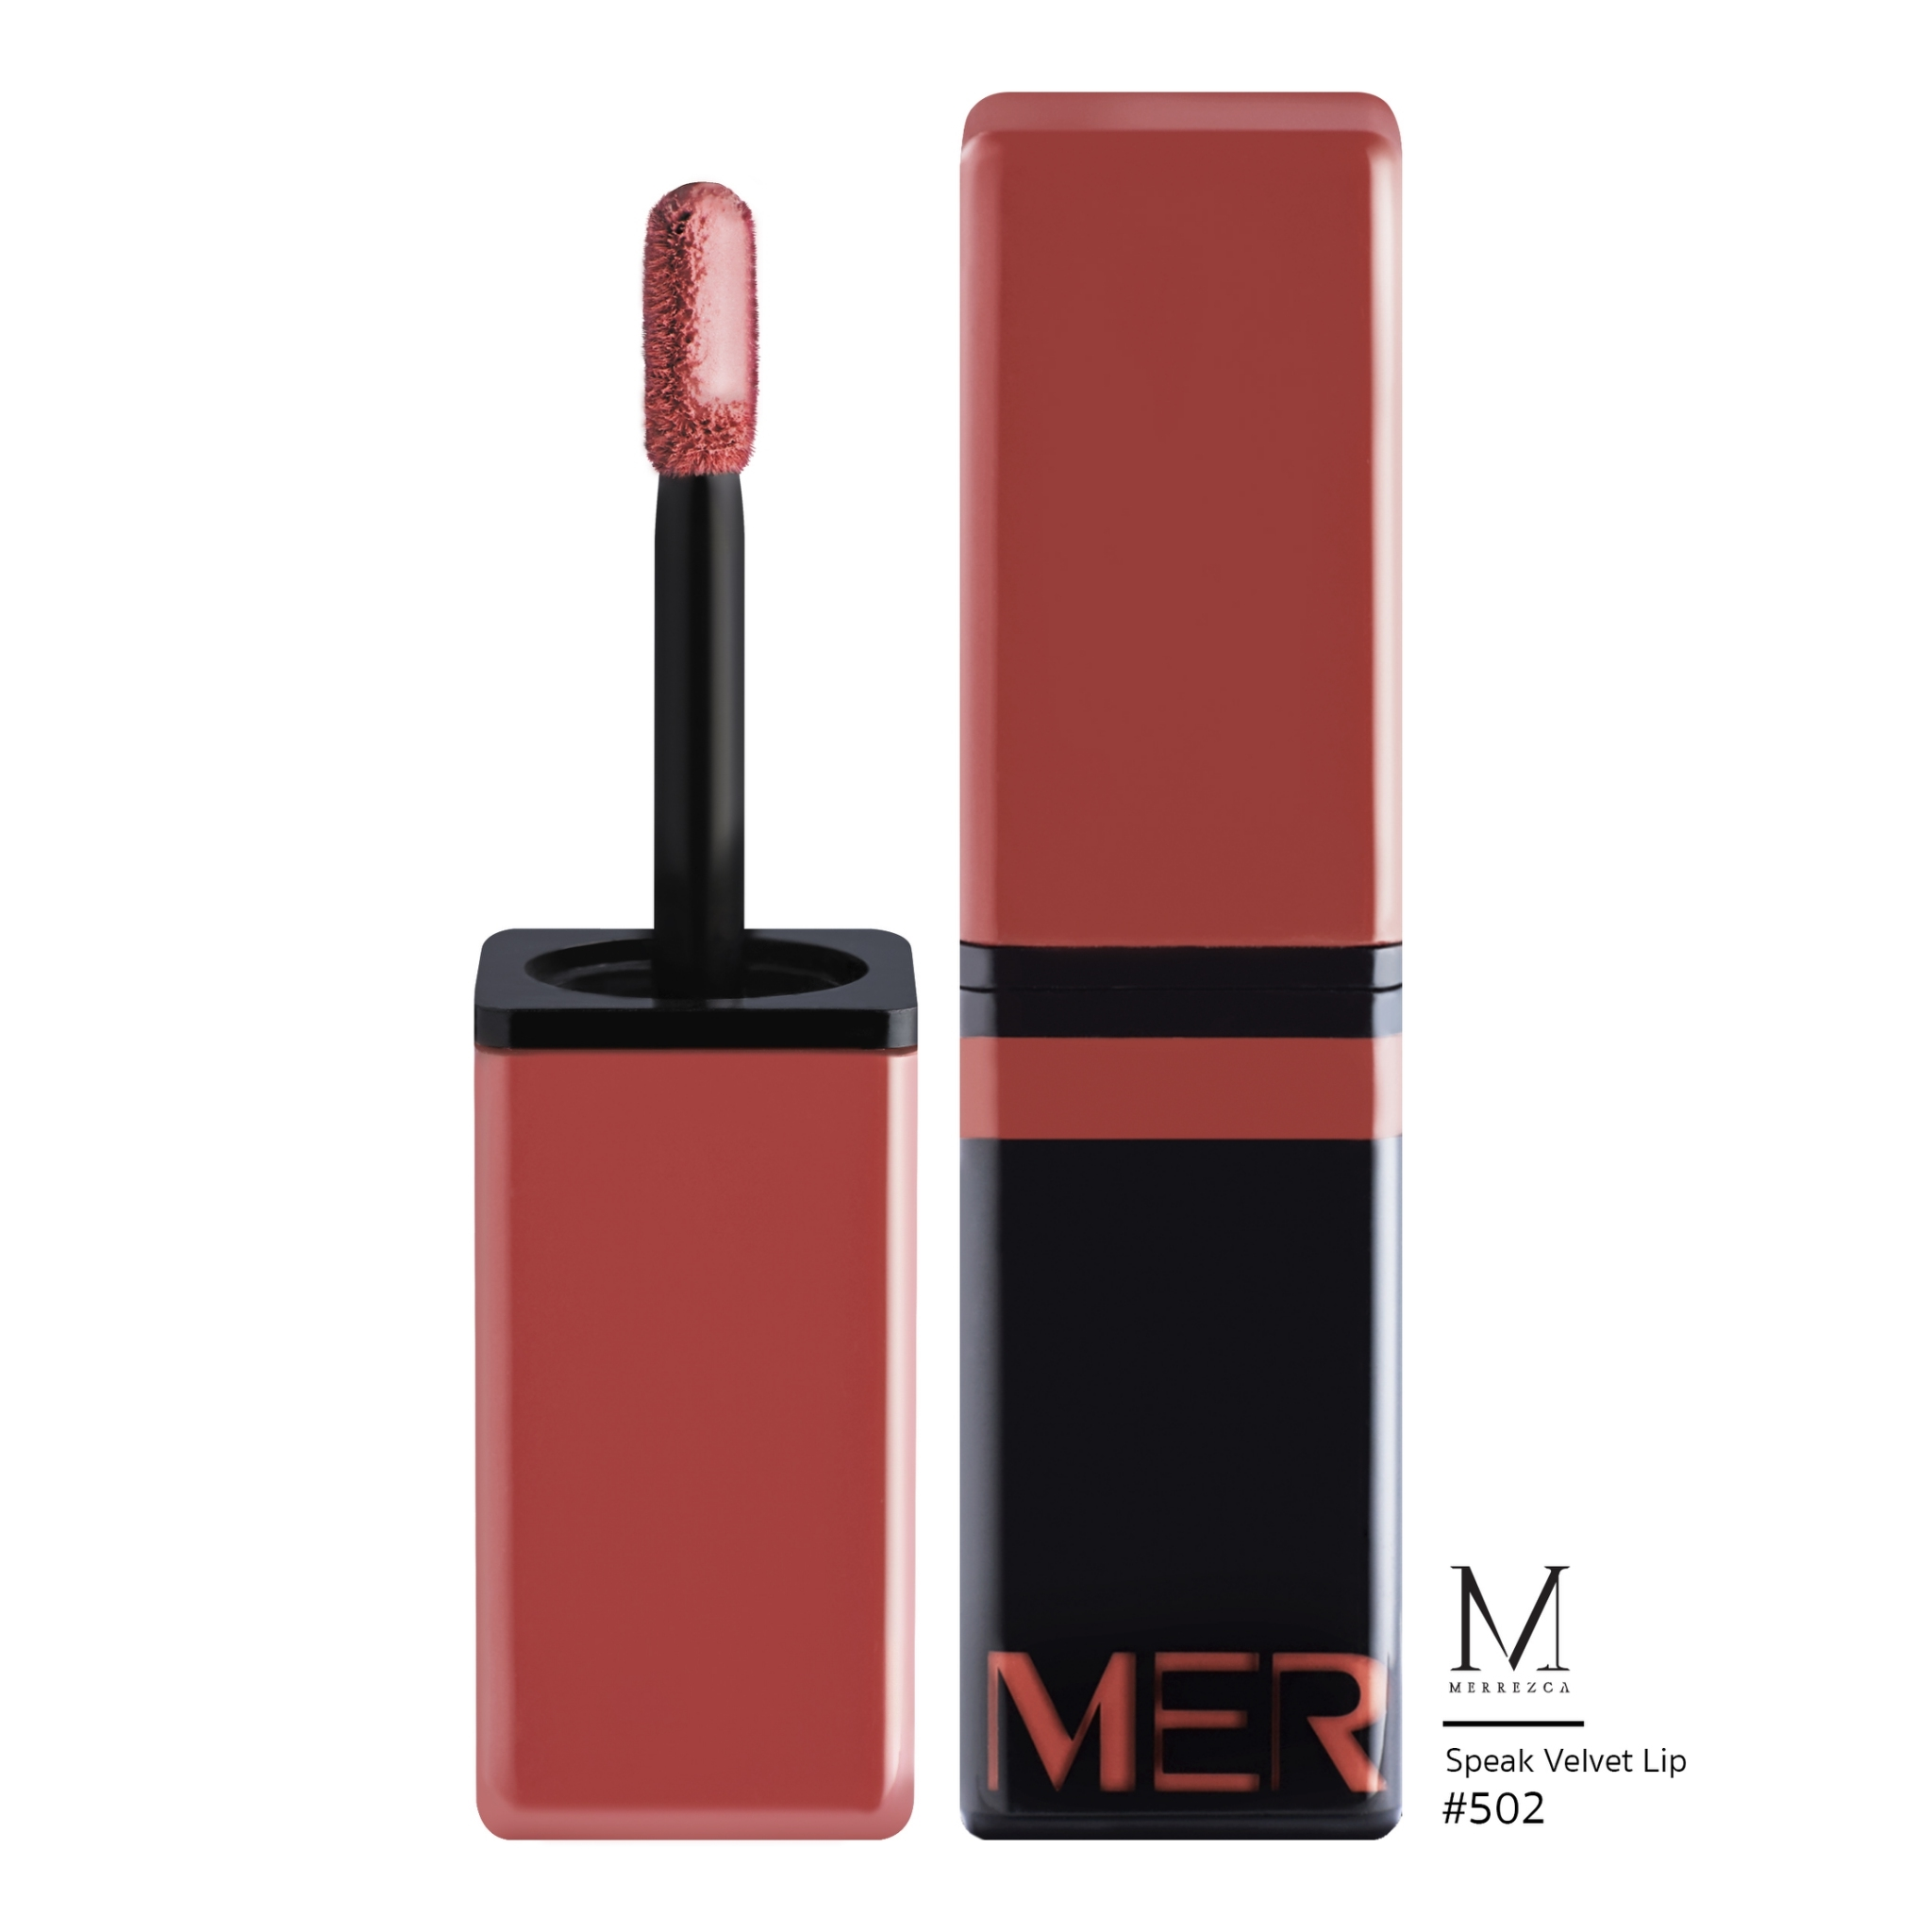 Merrez'ca Speak Velvet Lip # 502